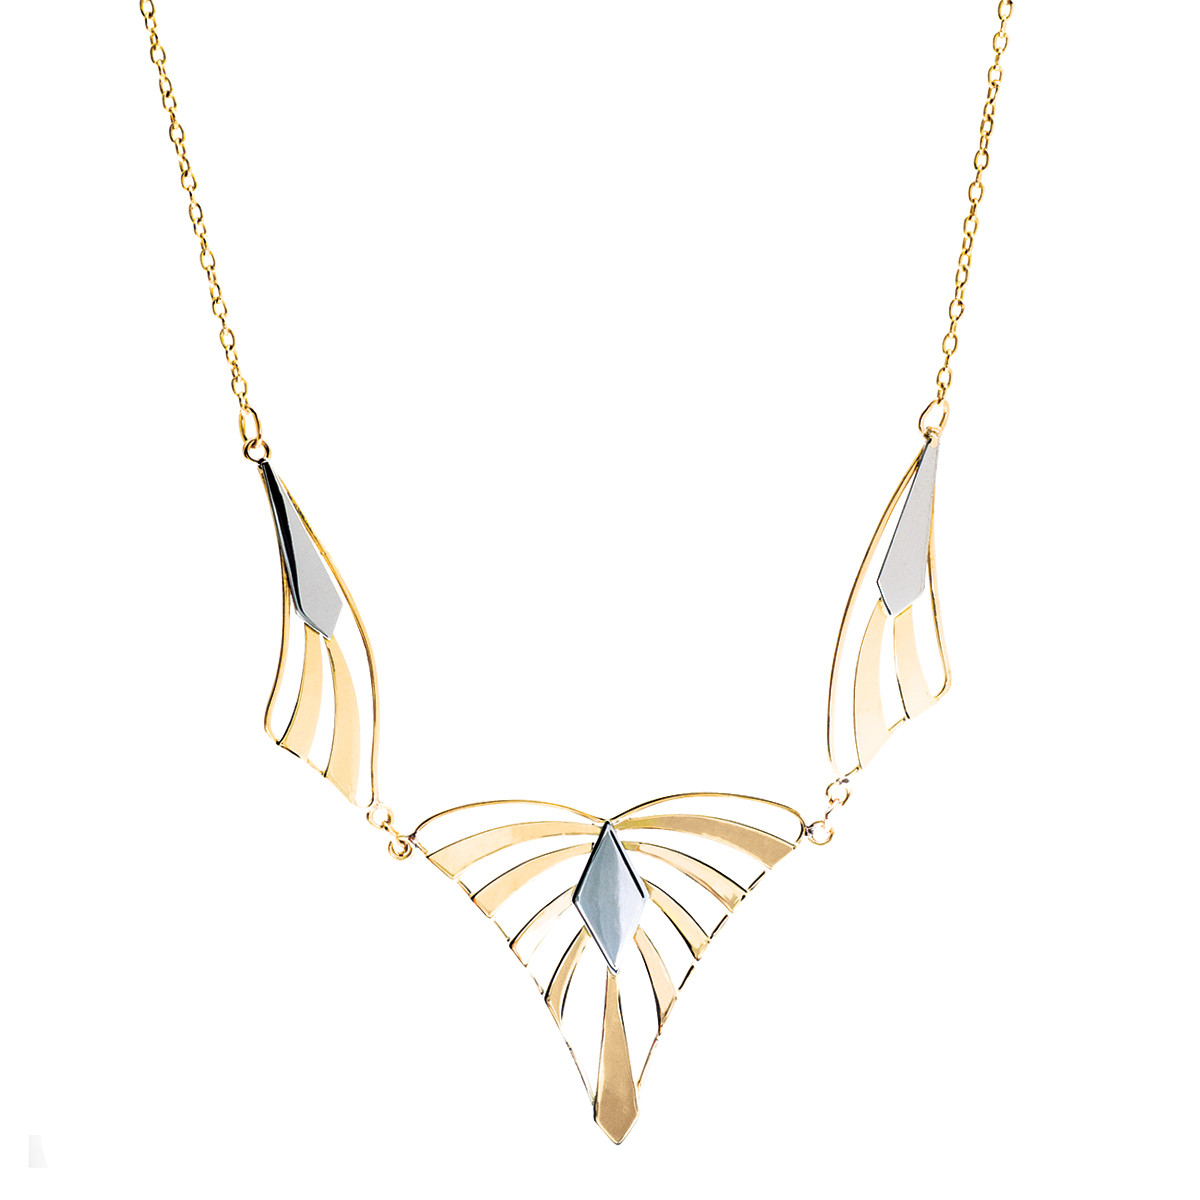 Vintage Art Deco-Inspired Arch Necklace